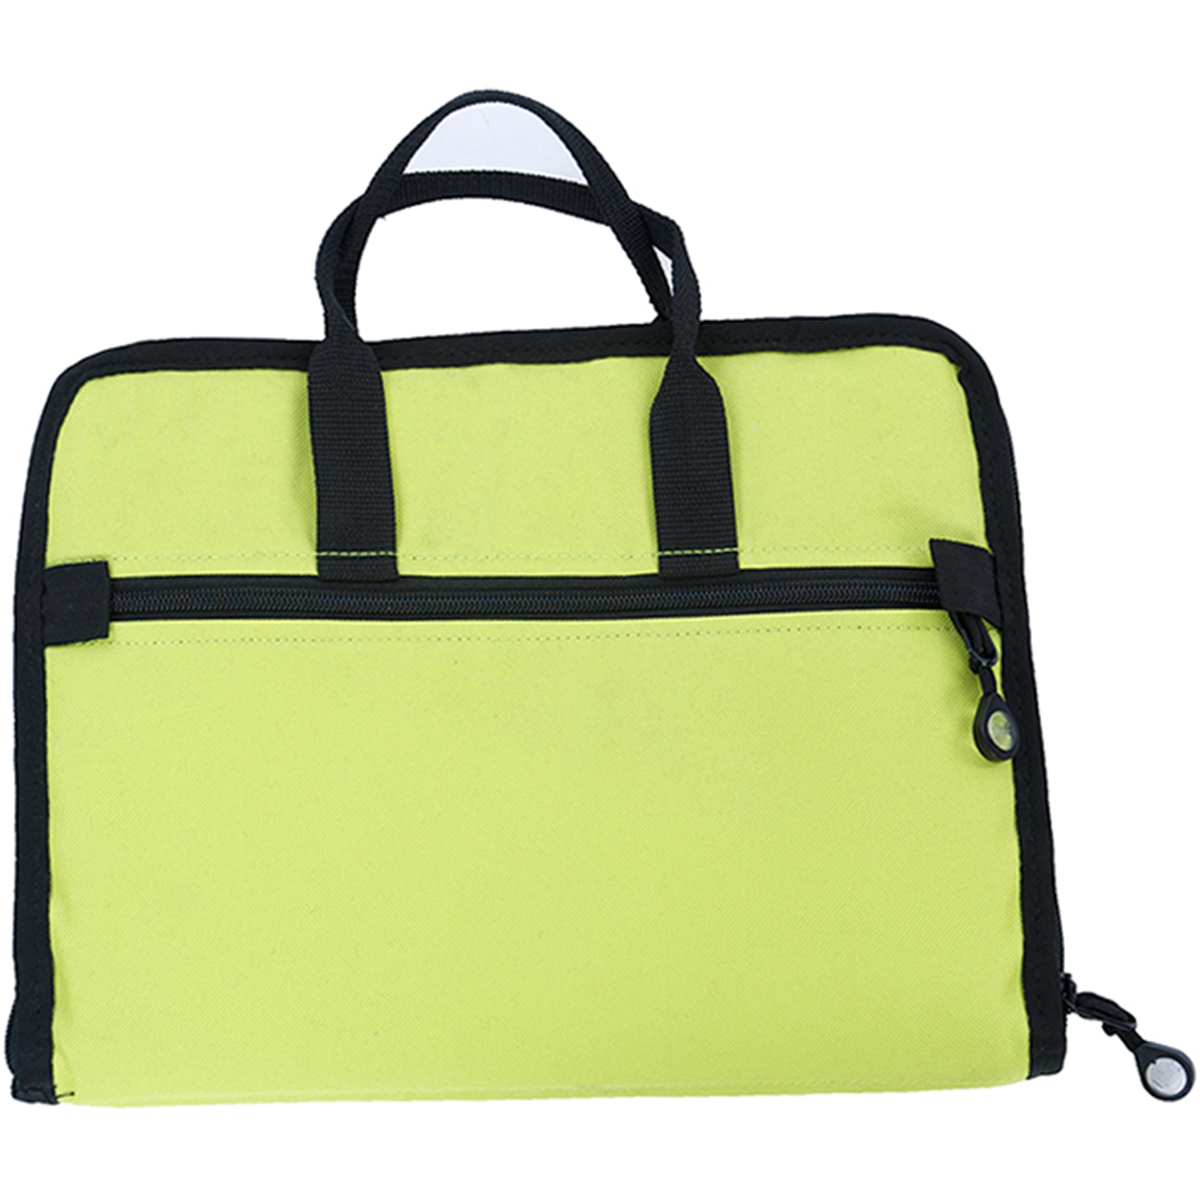 "Notions Bag 20""X12""-Green"